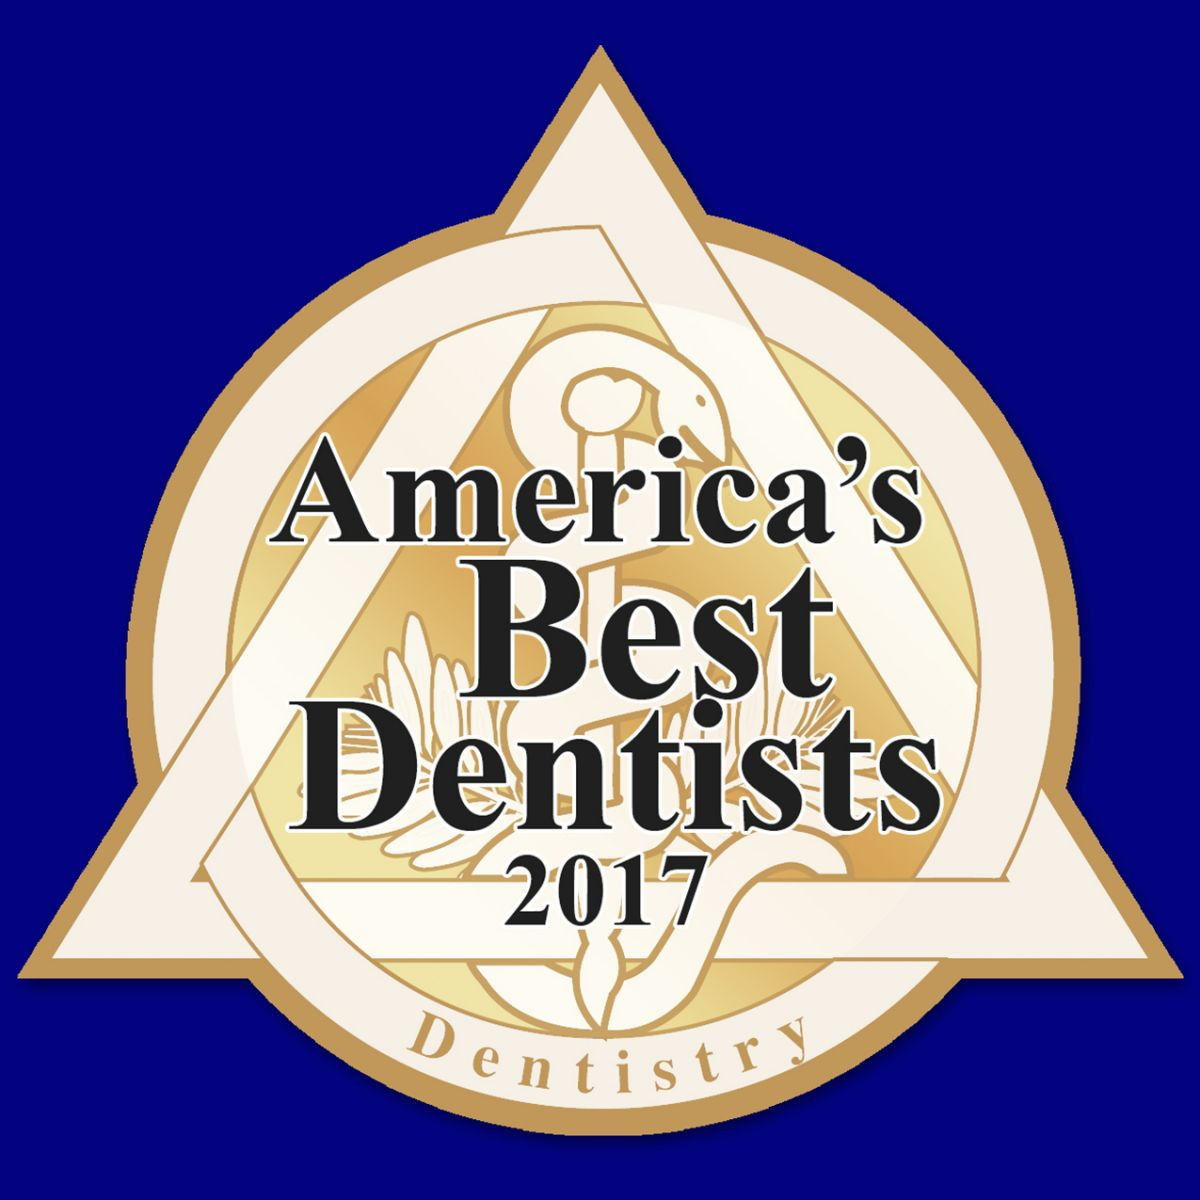 america's best dentists 2017